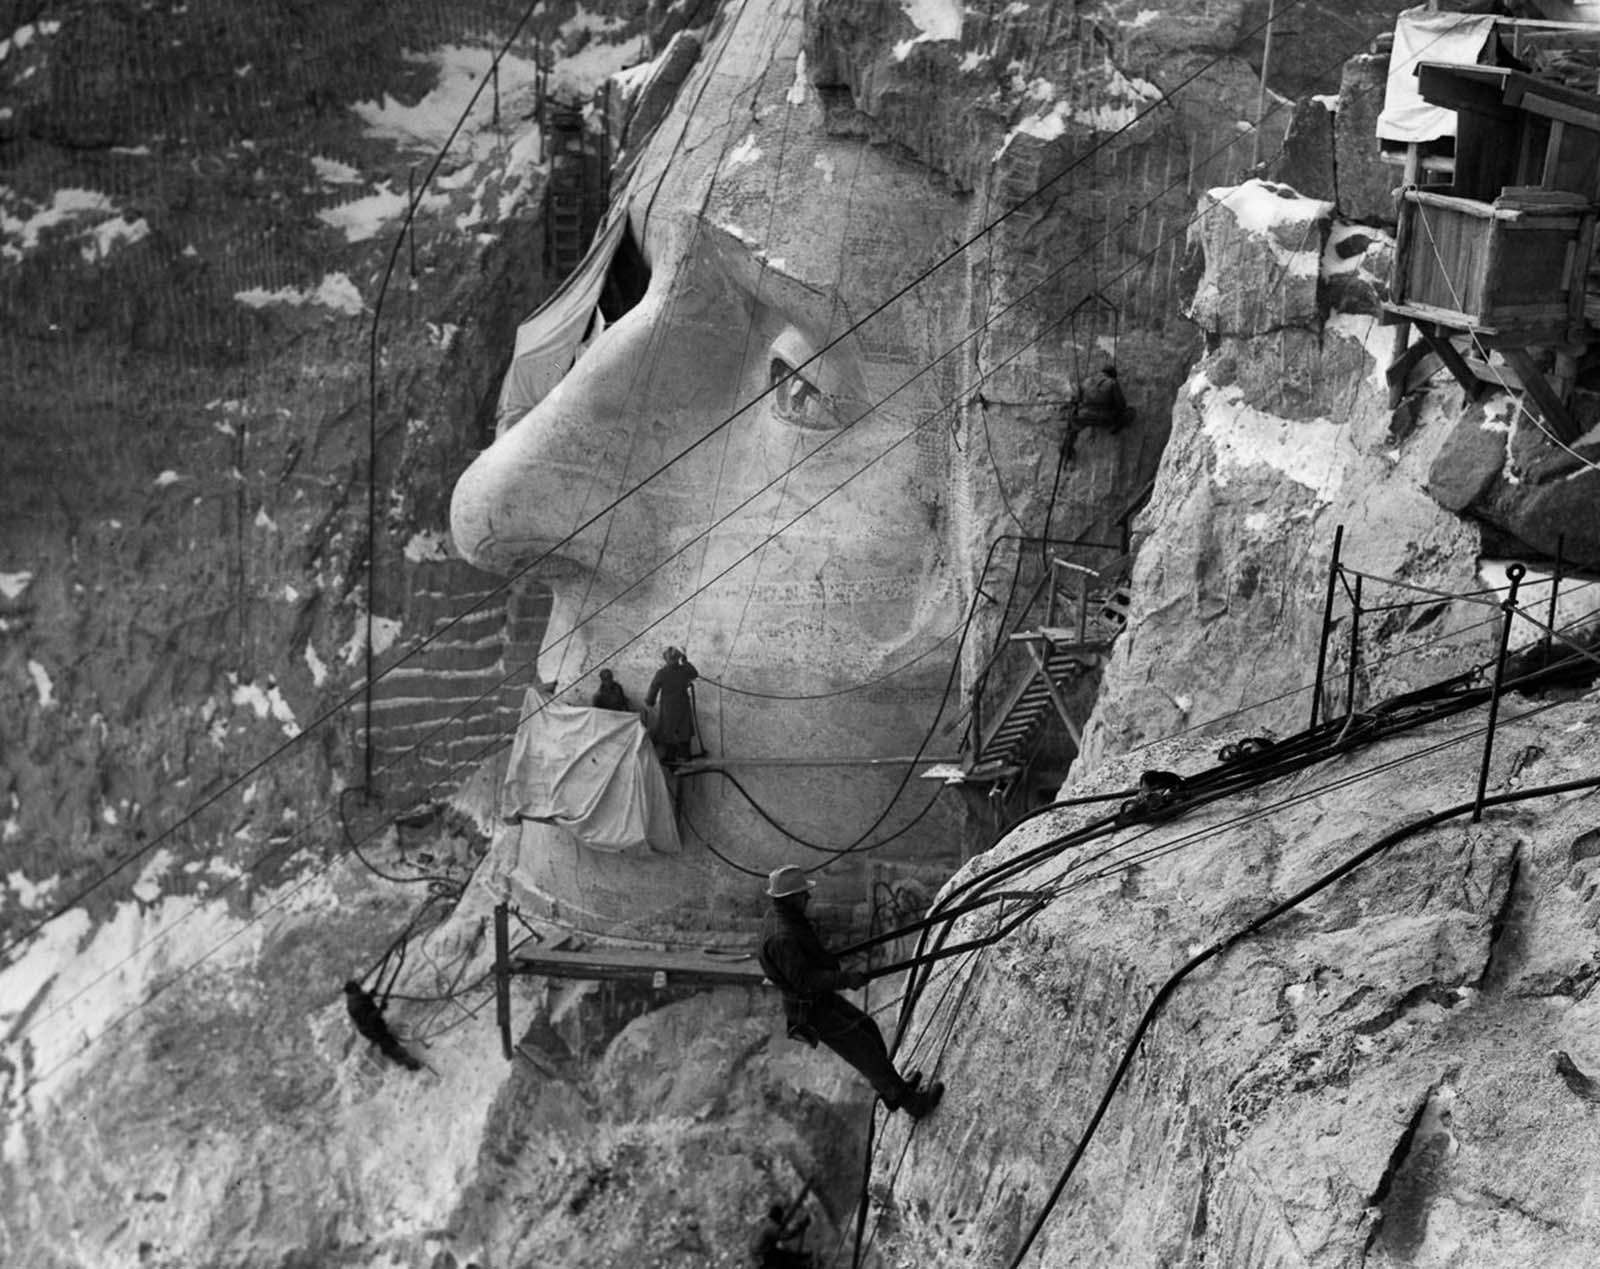 Historian Doane Robinson conceived the idea for Mount Rushmore in 1923 to promote tourism in South Dakota.